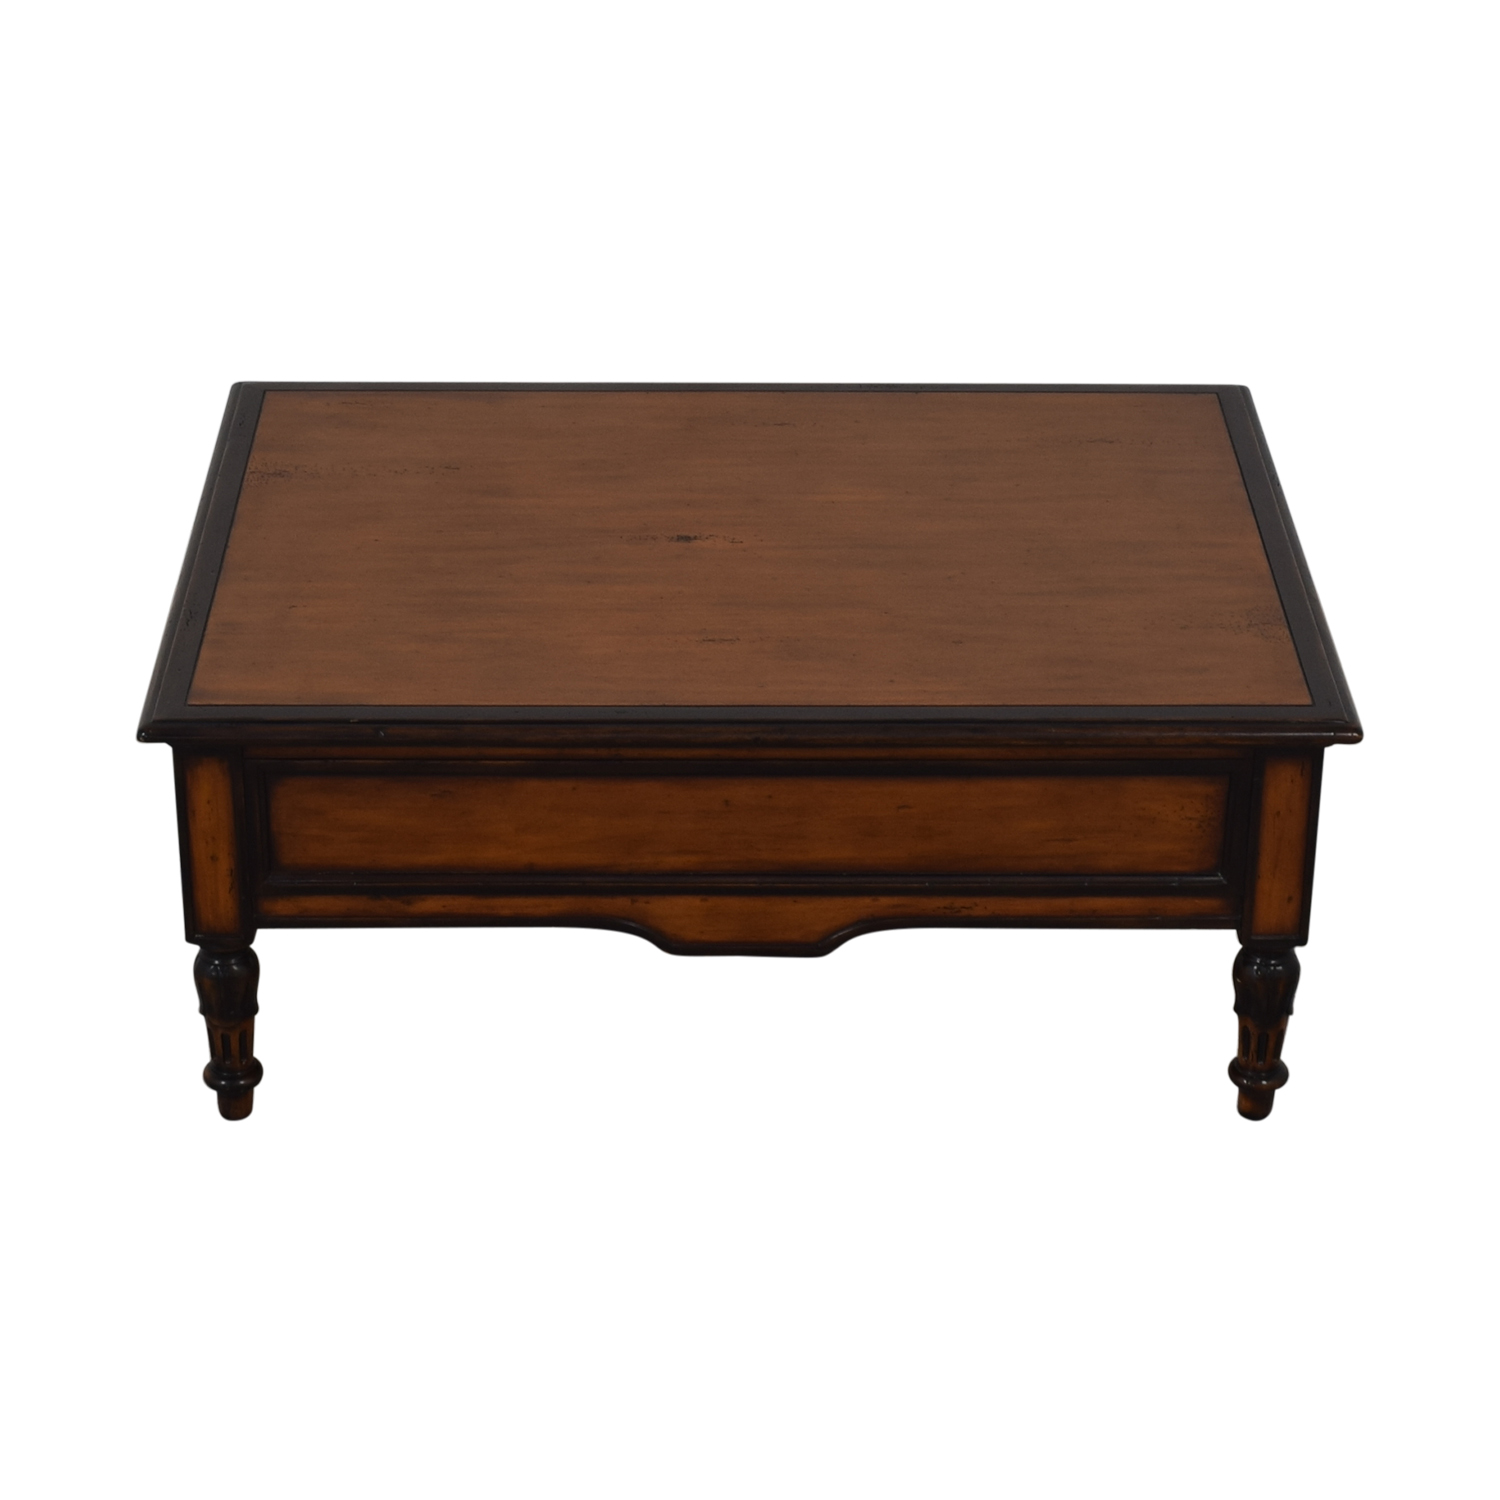 Theodore Alexander Chateau du Vallois Coffee Table Theodore Alexander